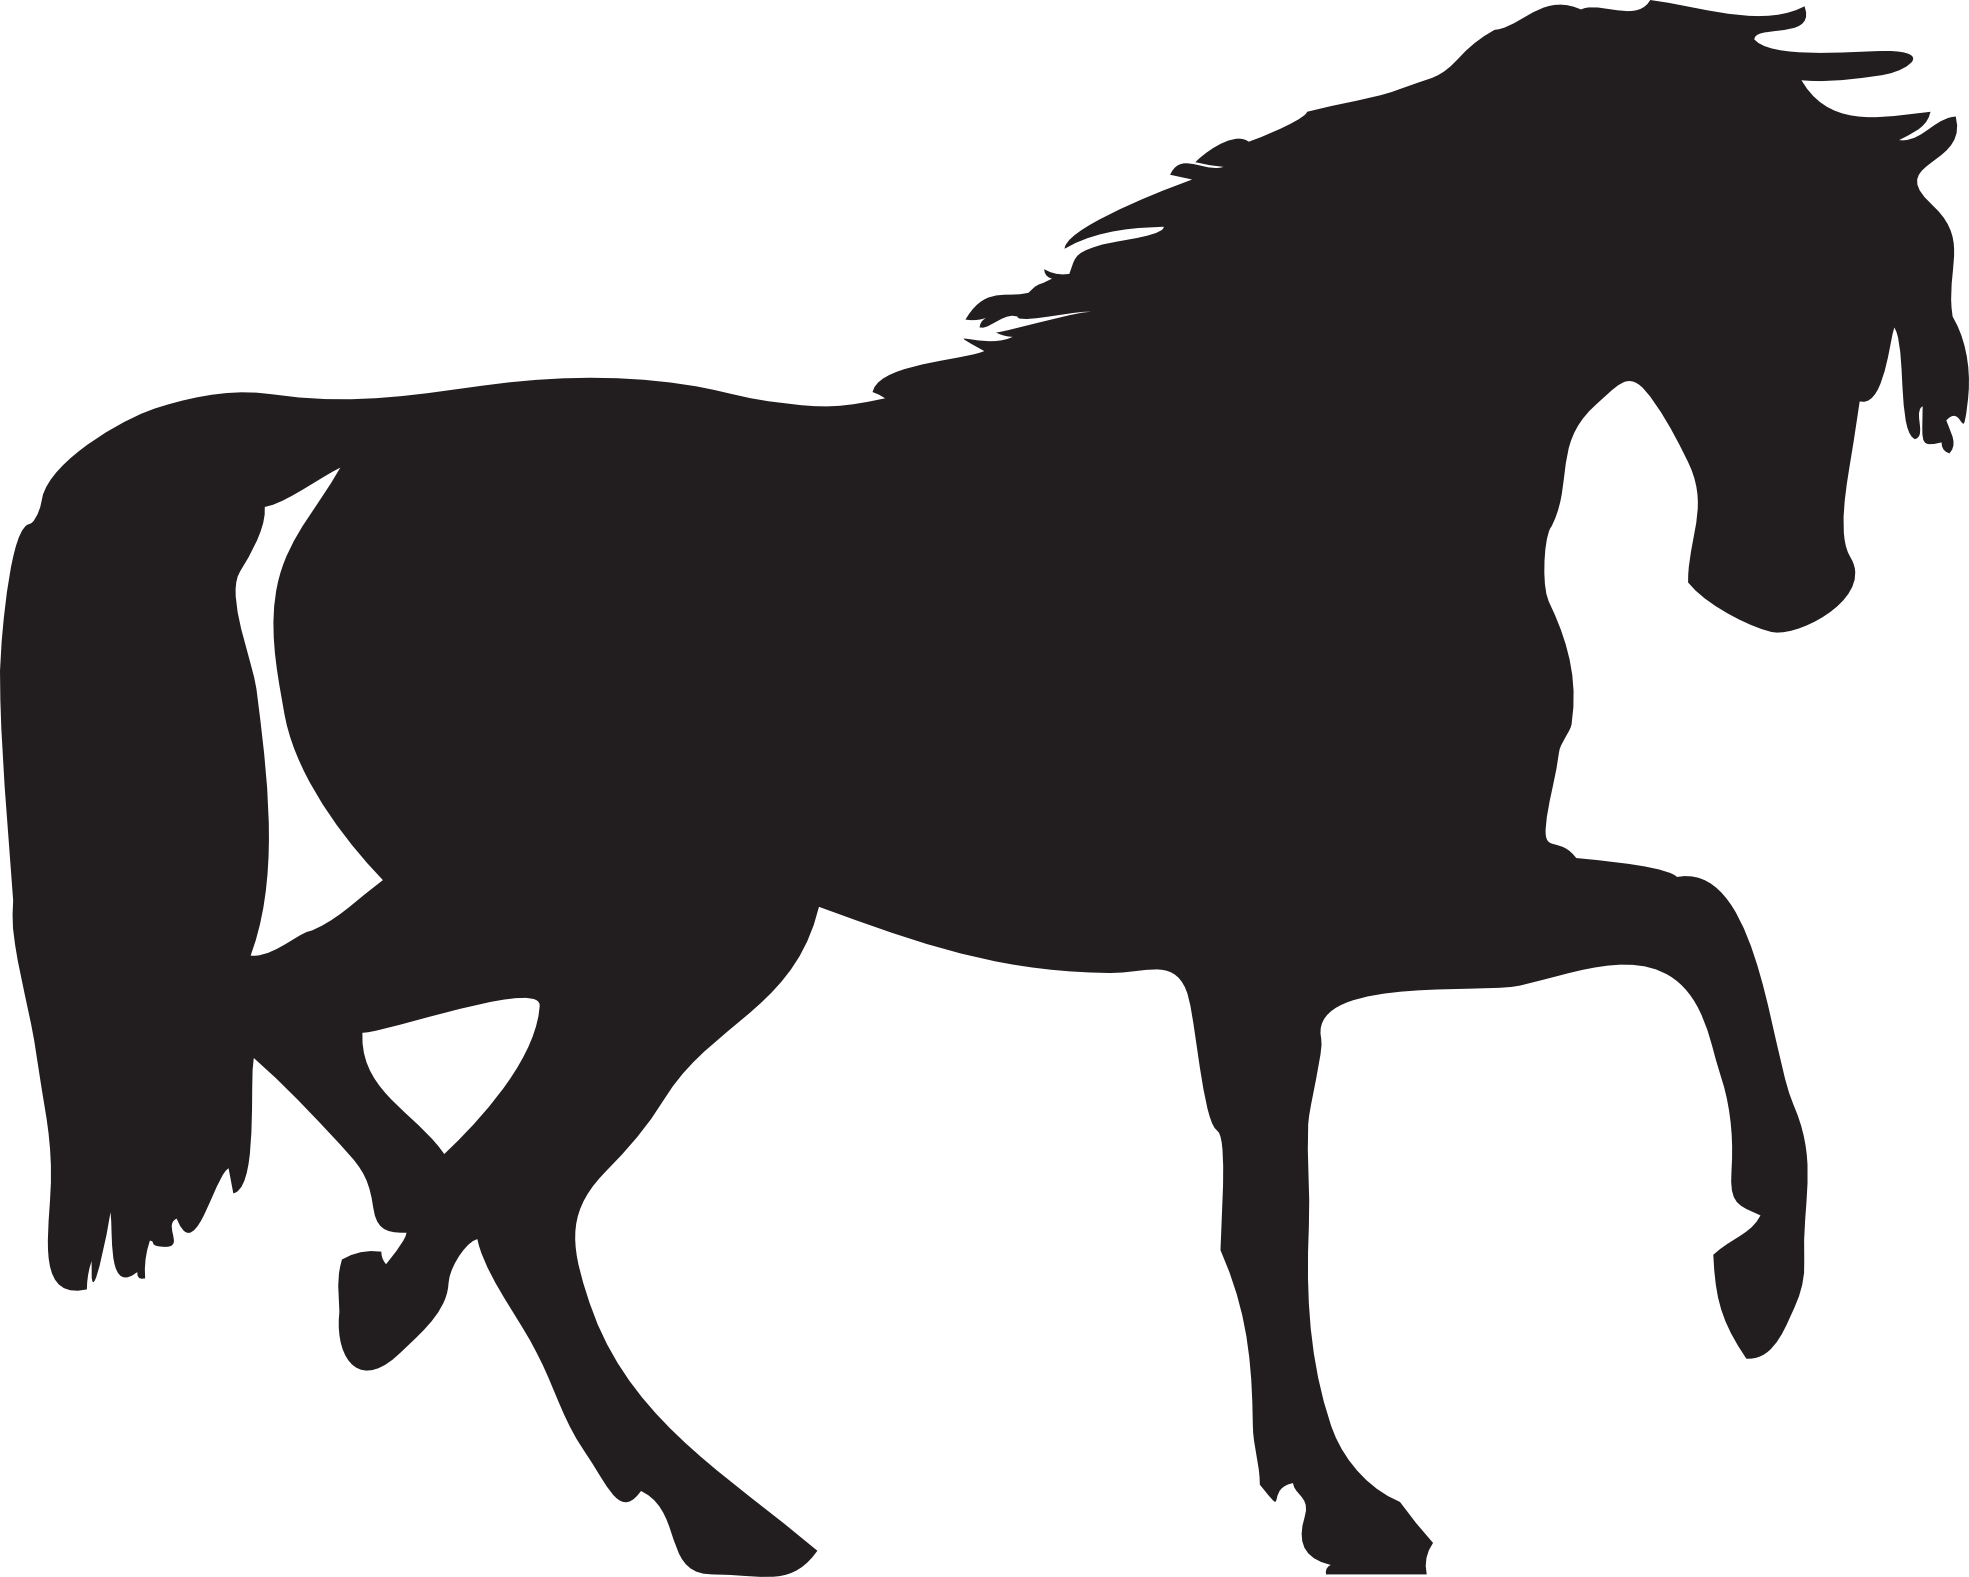 Black horse png. Image without background web